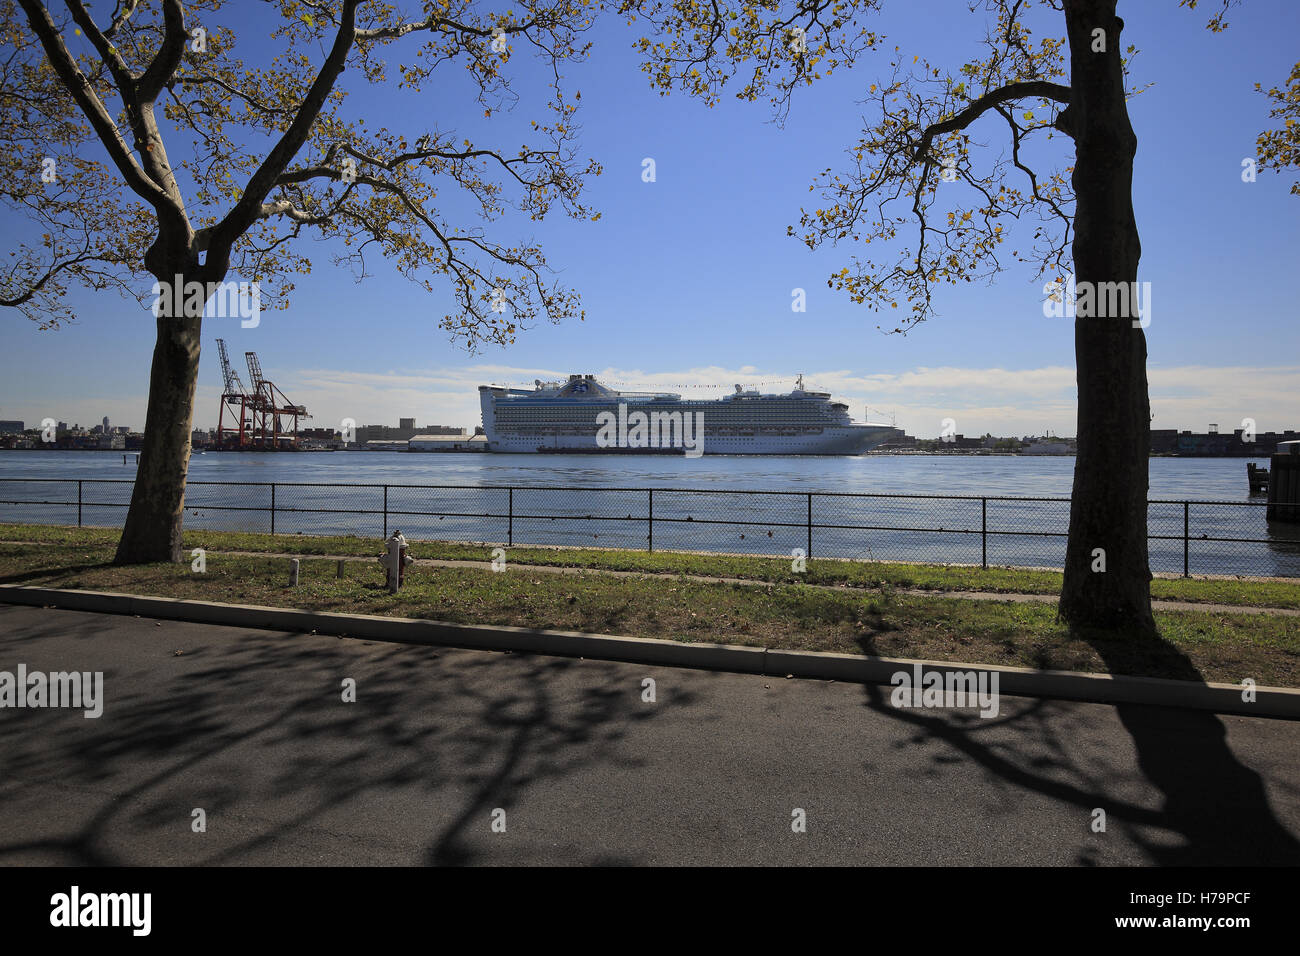 Cruise ship docked at the red hook ferry terminal, seen from